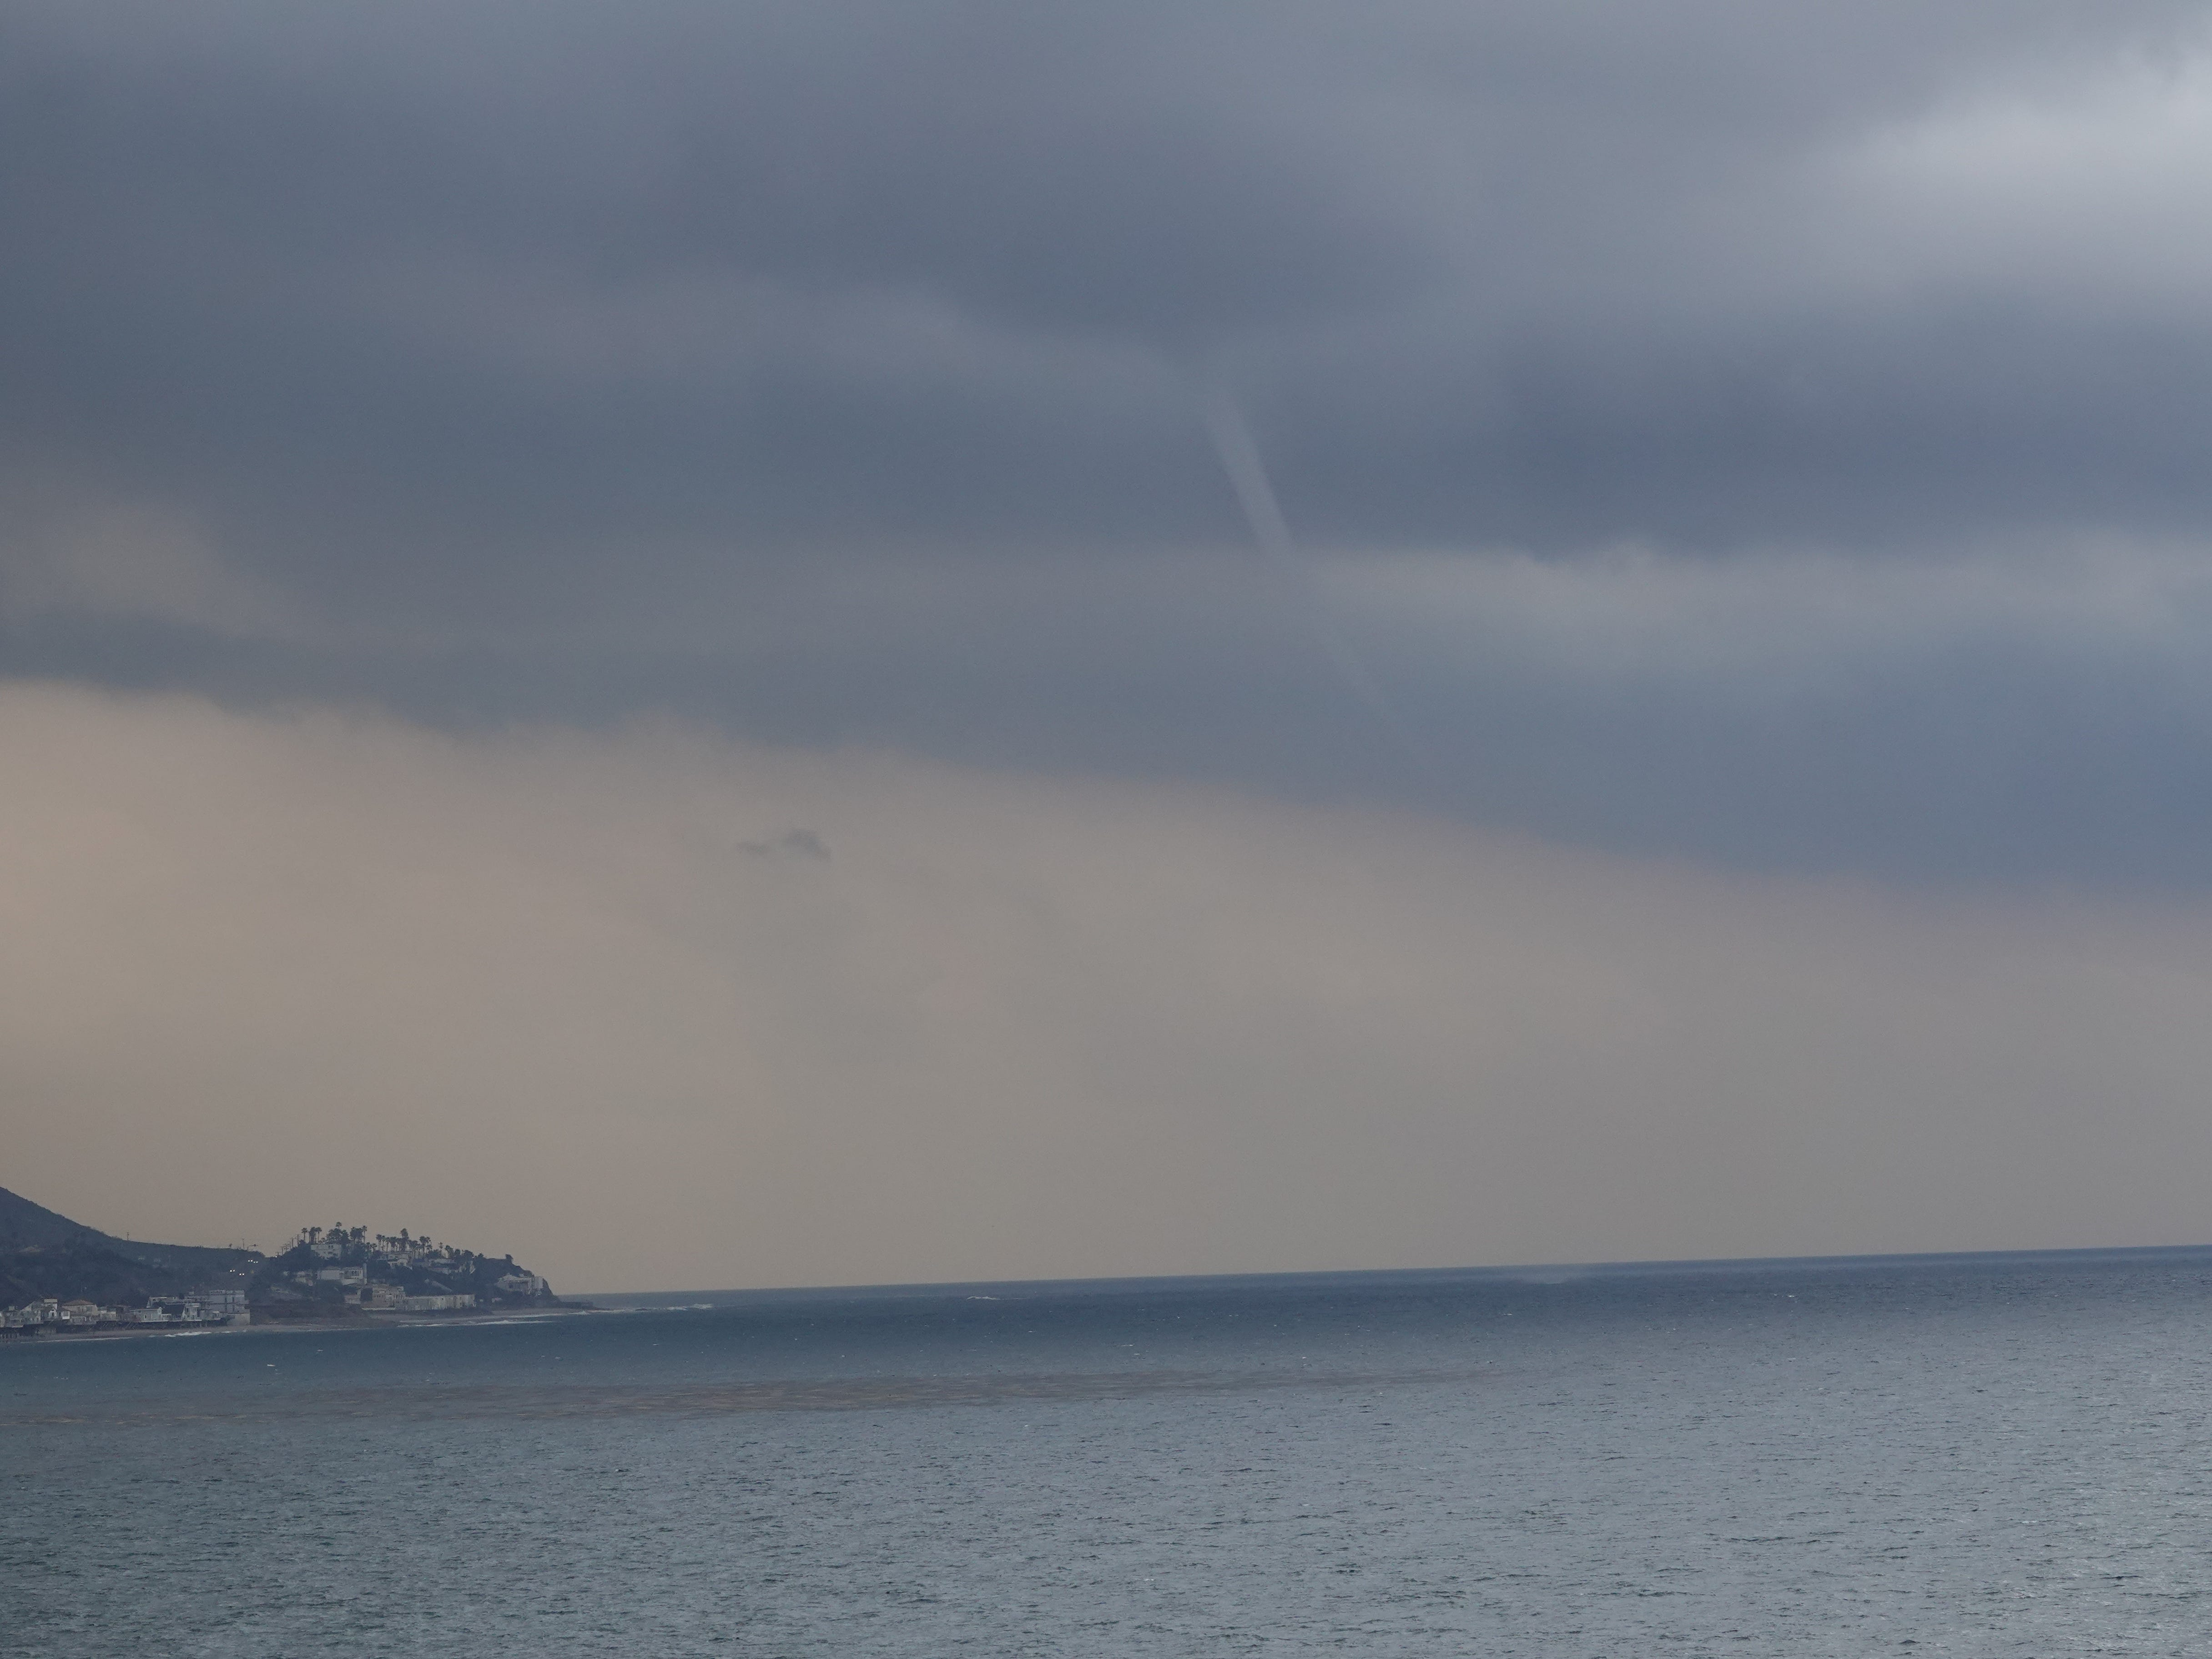 A series of funnel clouds were visible off the Ventura County coast Saturday as a storm system moved into the area, as seen here off Pacific Coast Highway south of Mugu Rock.